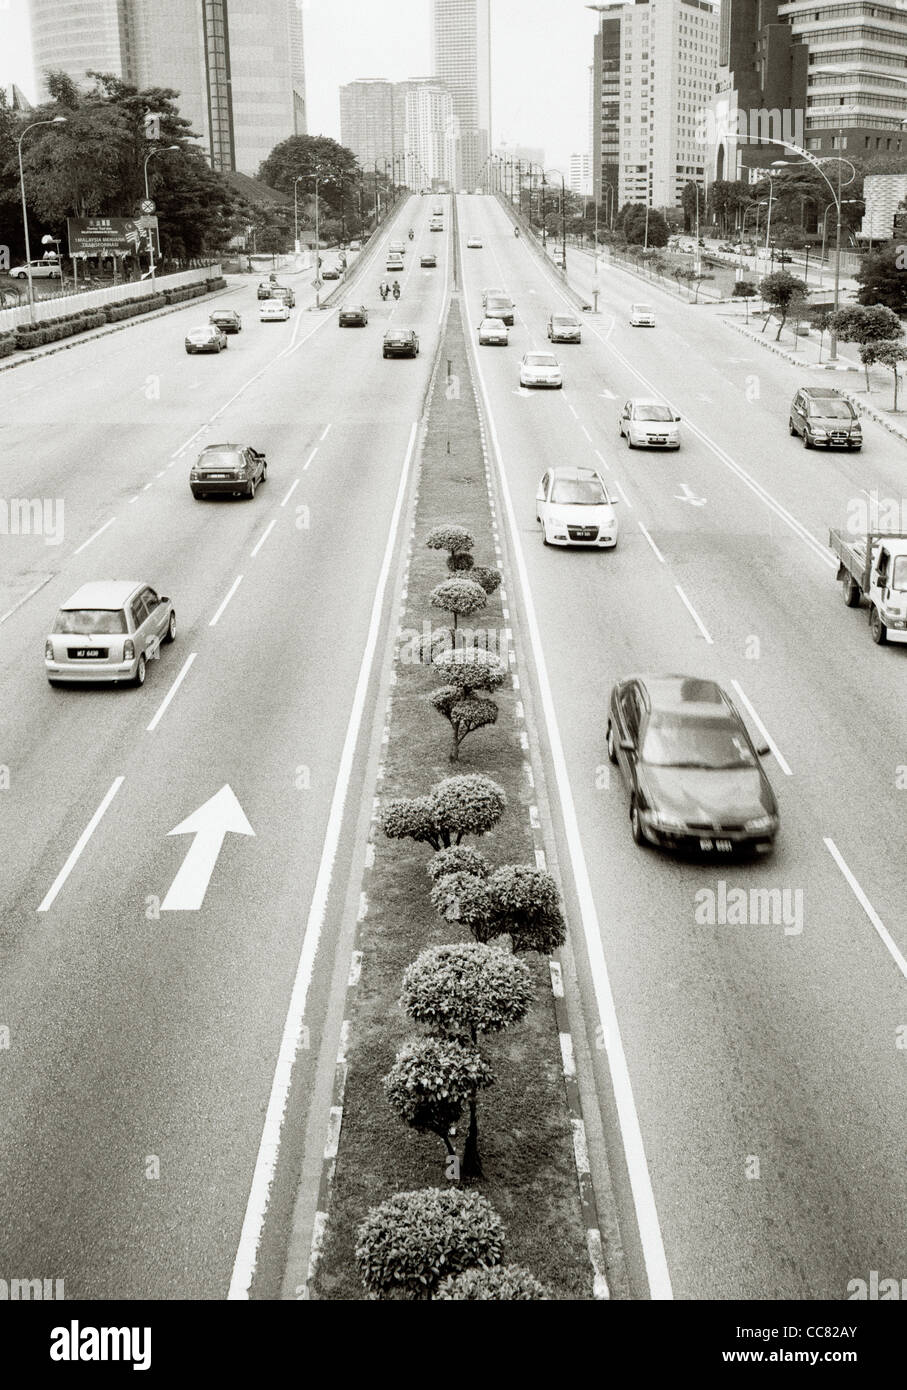 Travel Photography Car Driving On A Modern Highway In Kuala Lumpur Stock Photo Alamy